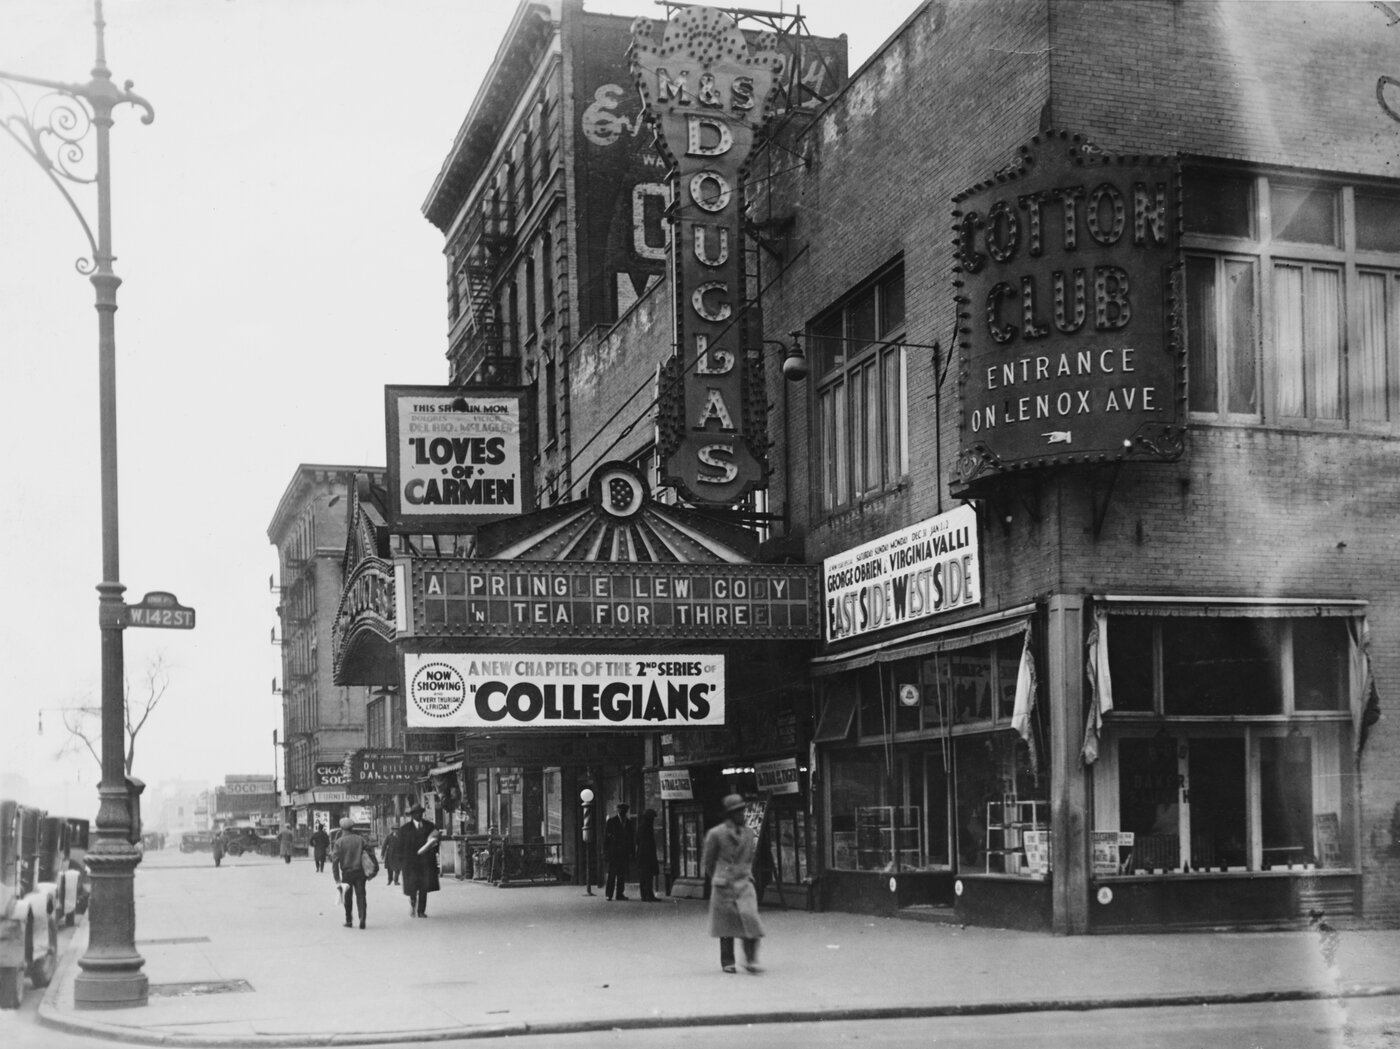 142nd Street and Lenox Avenue in Harlem, New York City, circa 1927.